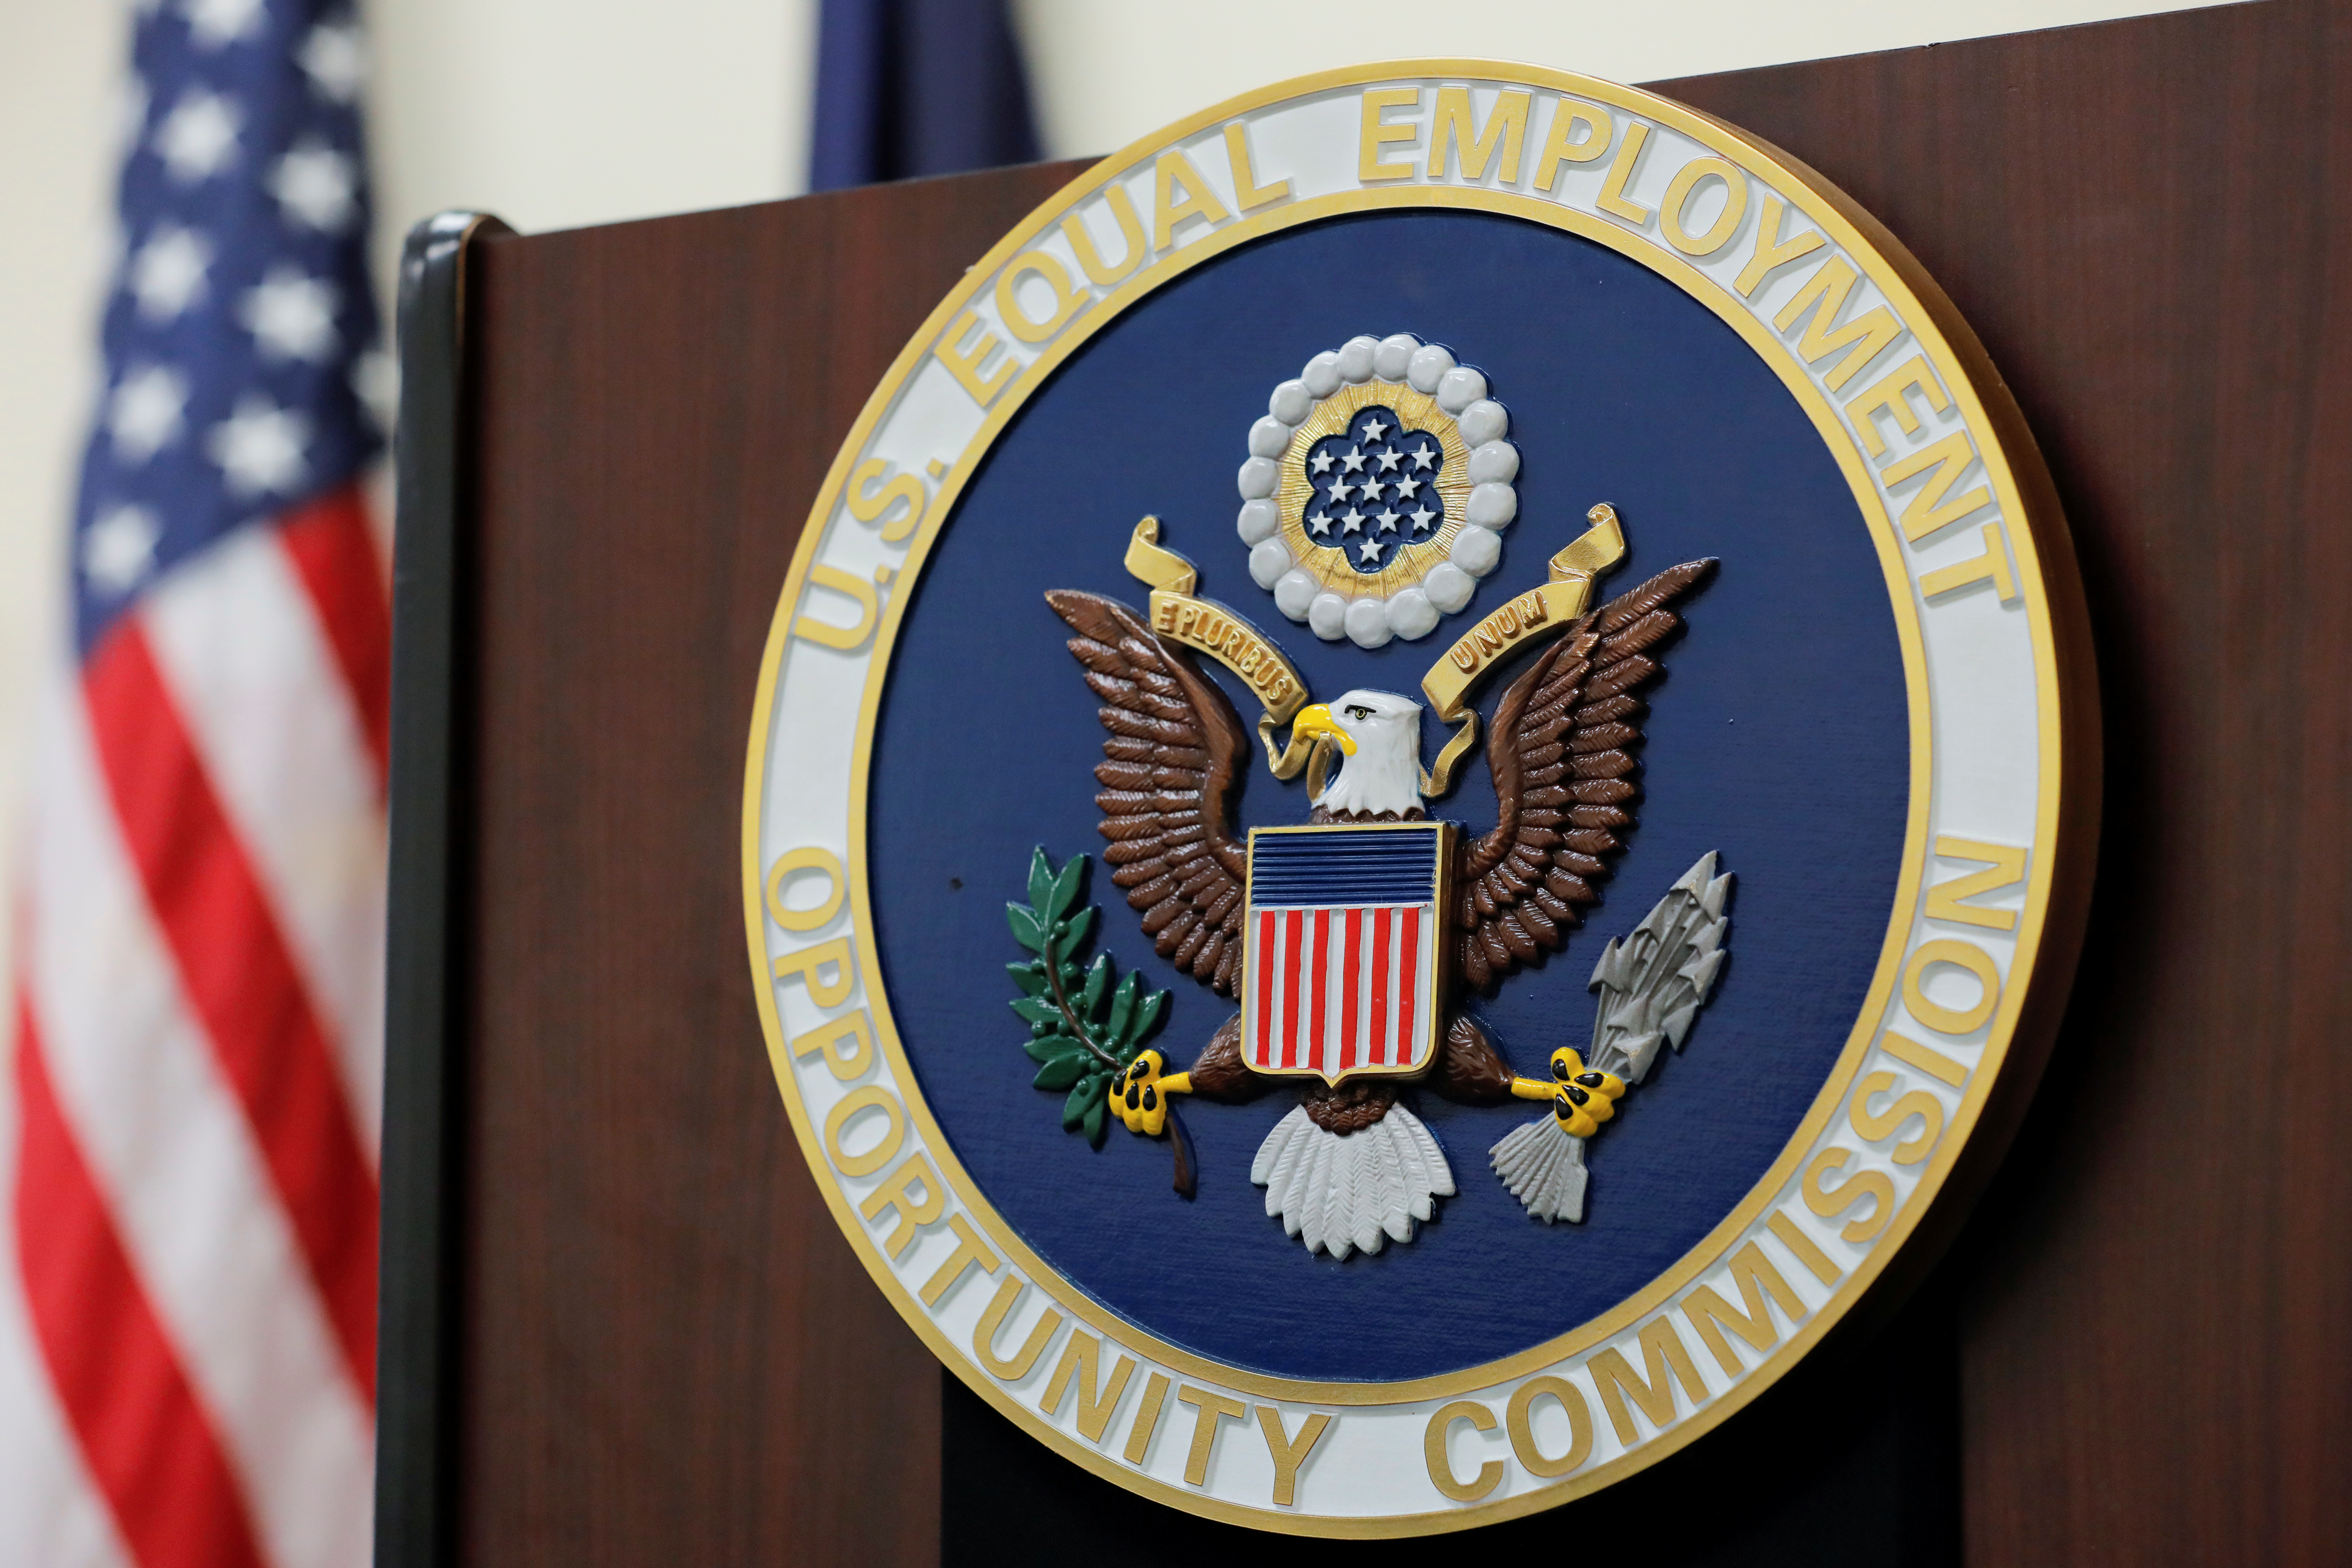 The seal of the U.S. Equal Employment Opportunity Commission (EEOC). REUTERS/Andrew Kelly